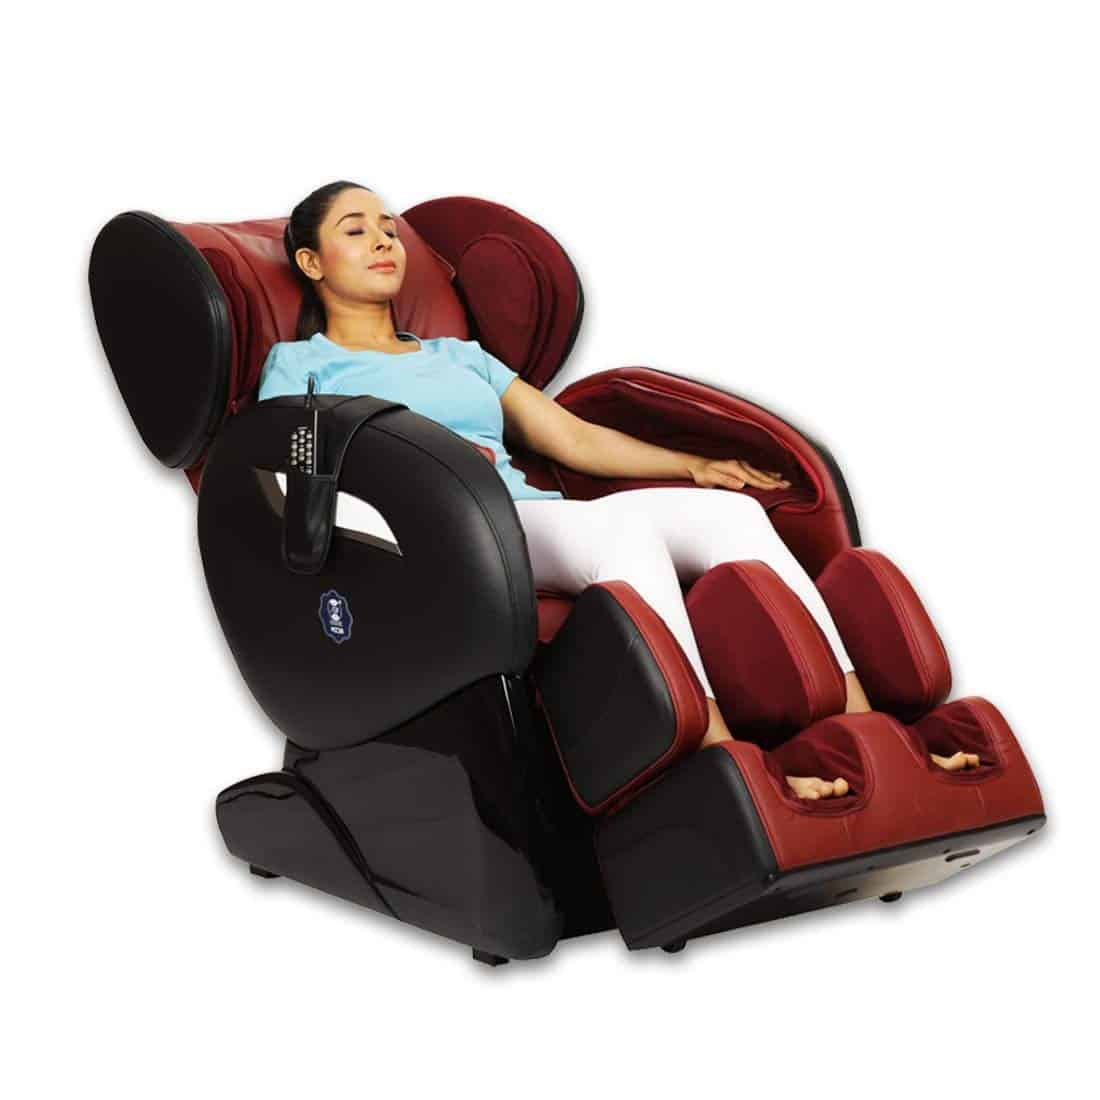 JSB MZ30 Massage Chair for Home